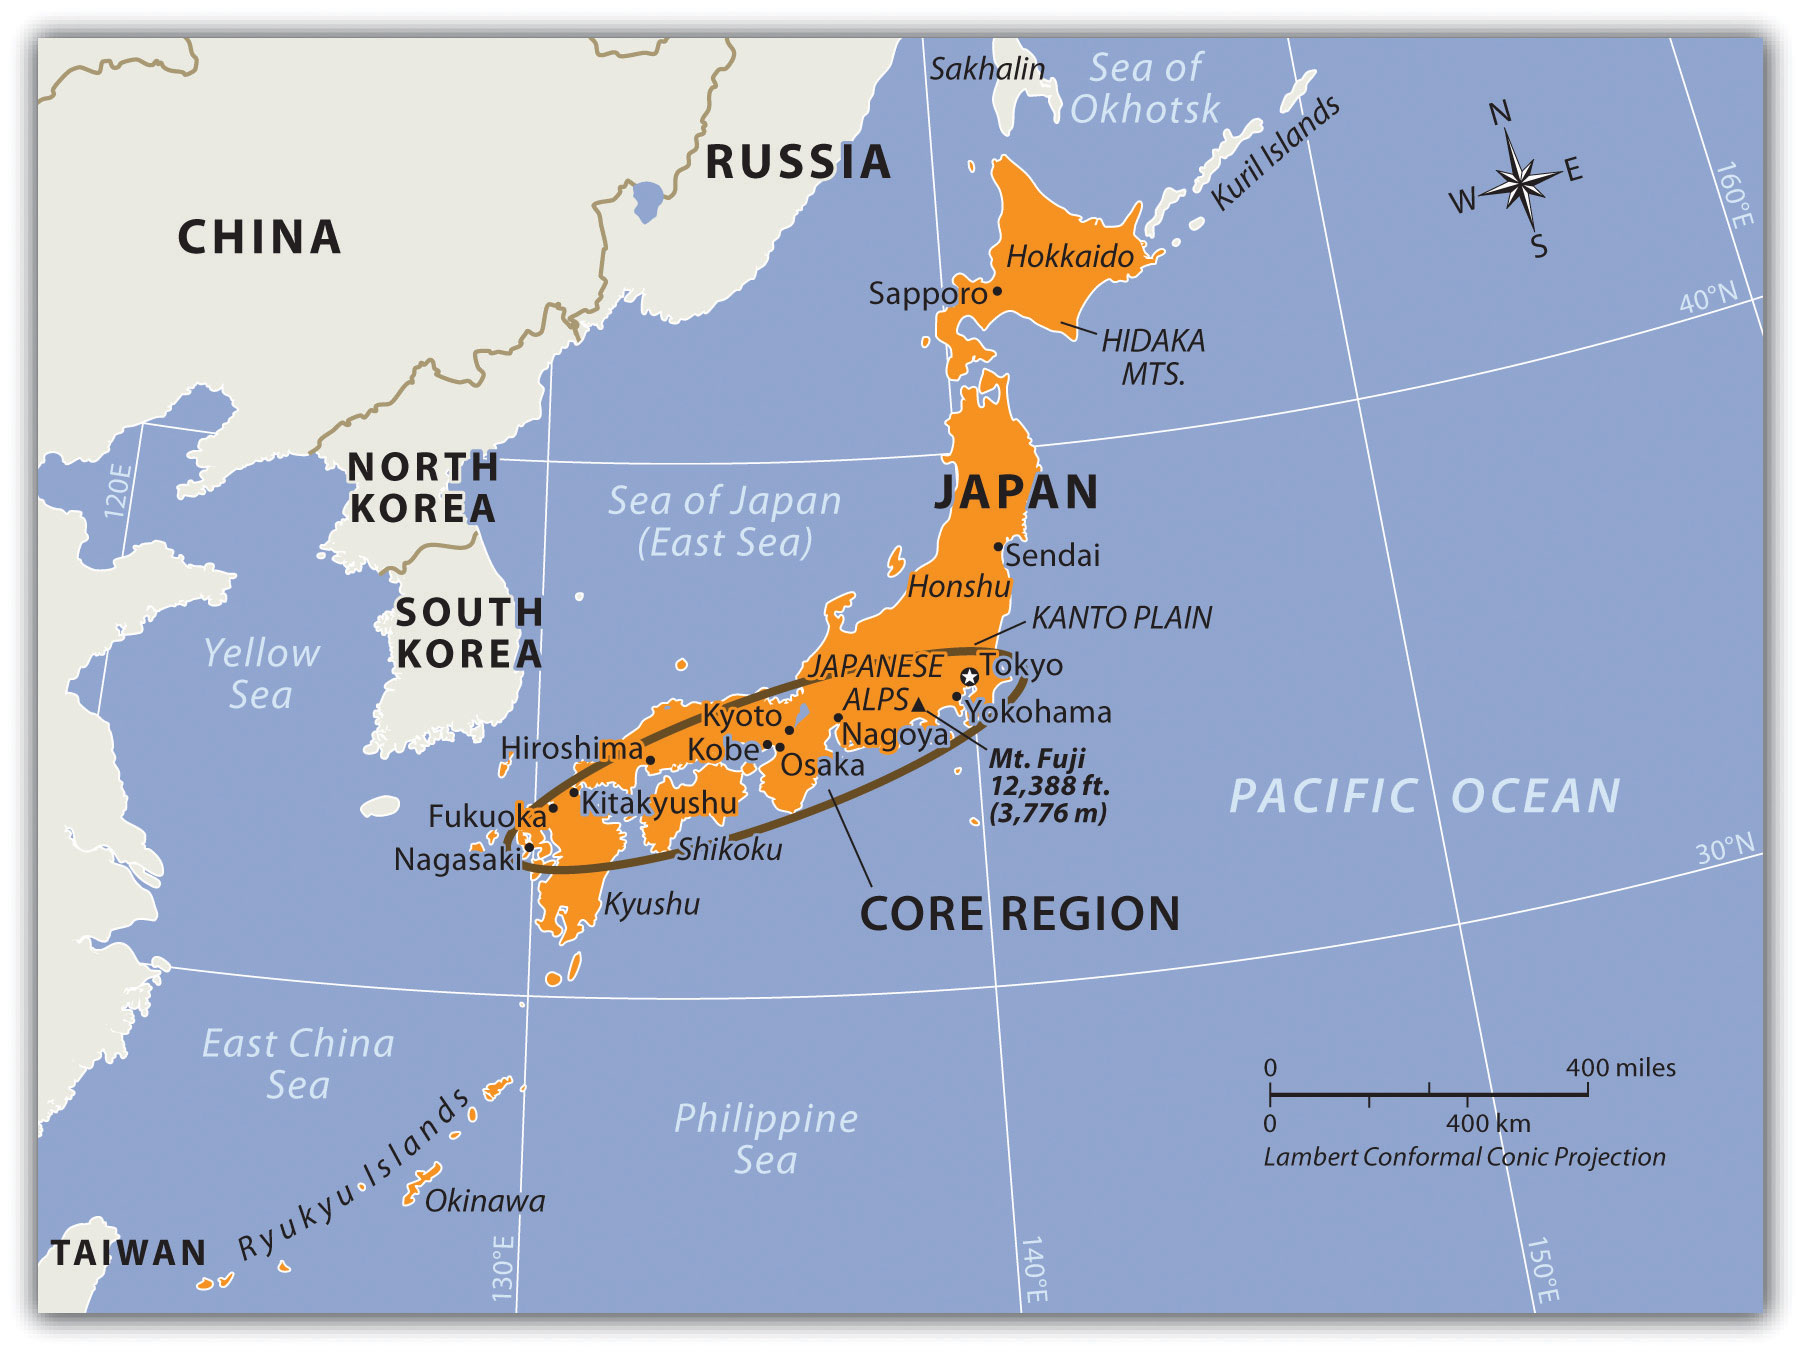 Japan and Korea (North and South)